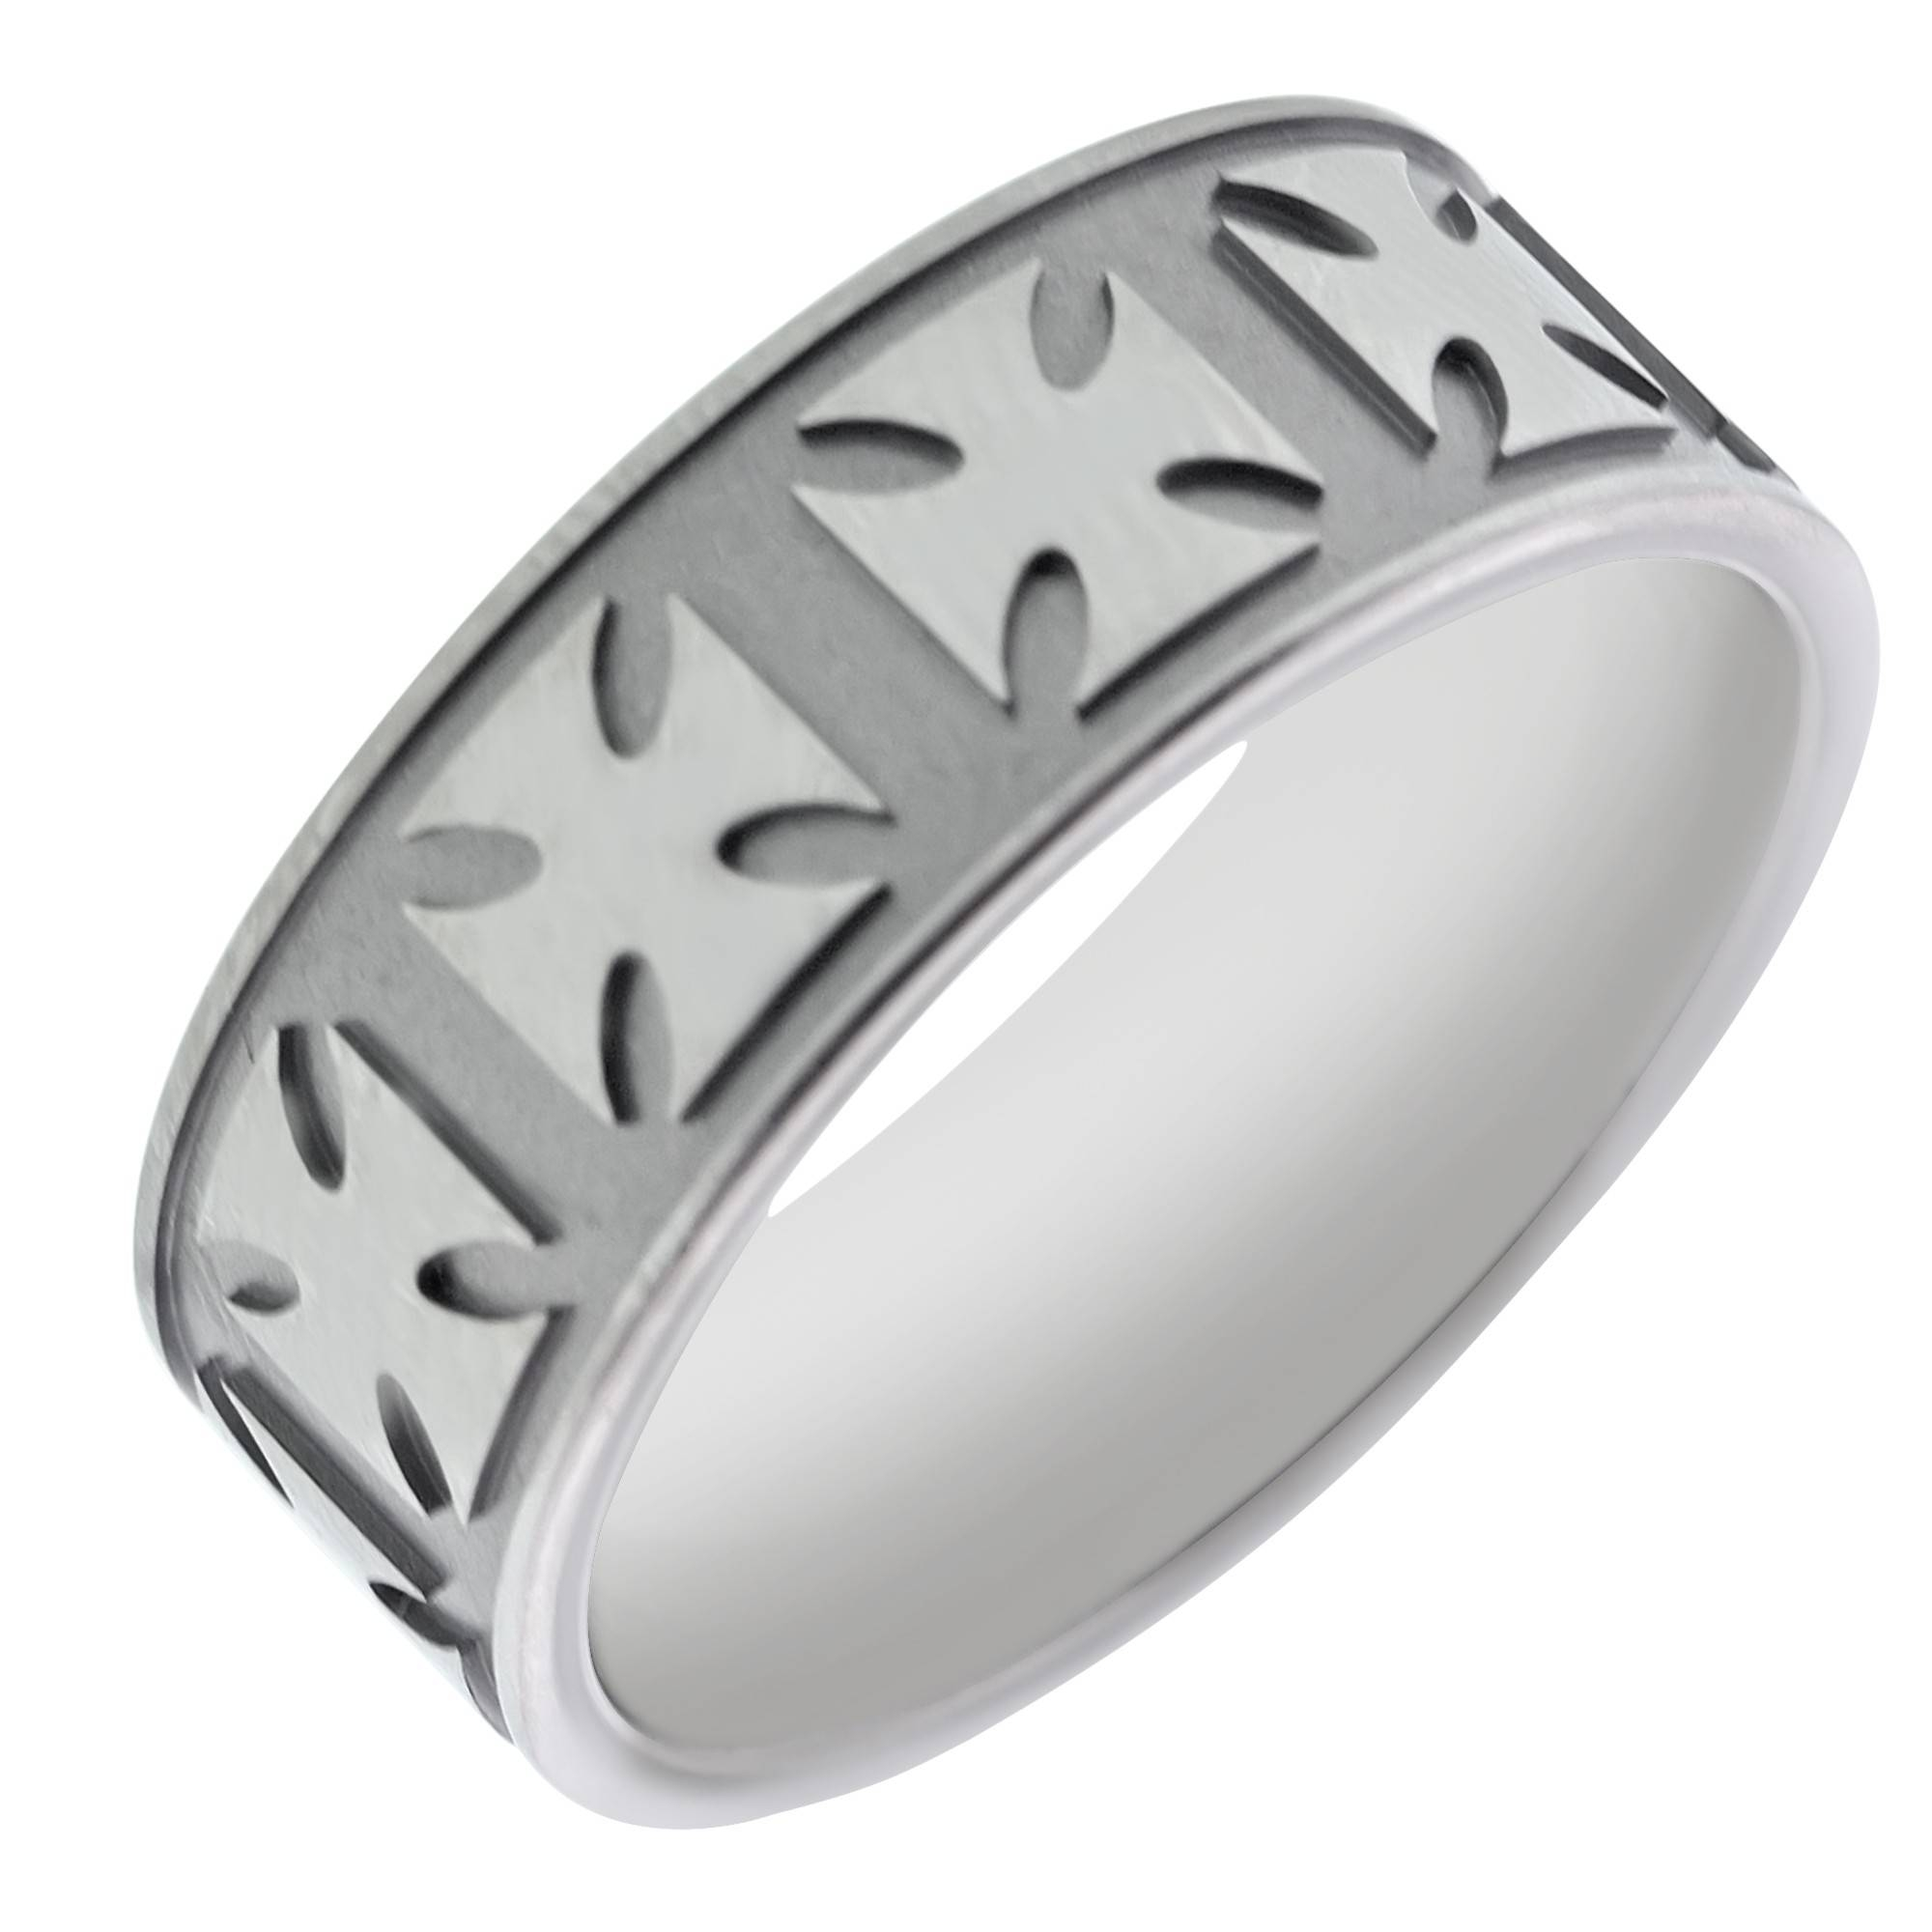 Mens Maltese Cross Wedding Band In Titanium (8mm) With Regard To Men's Wedding Bands With Crosses (View 6 of 15)